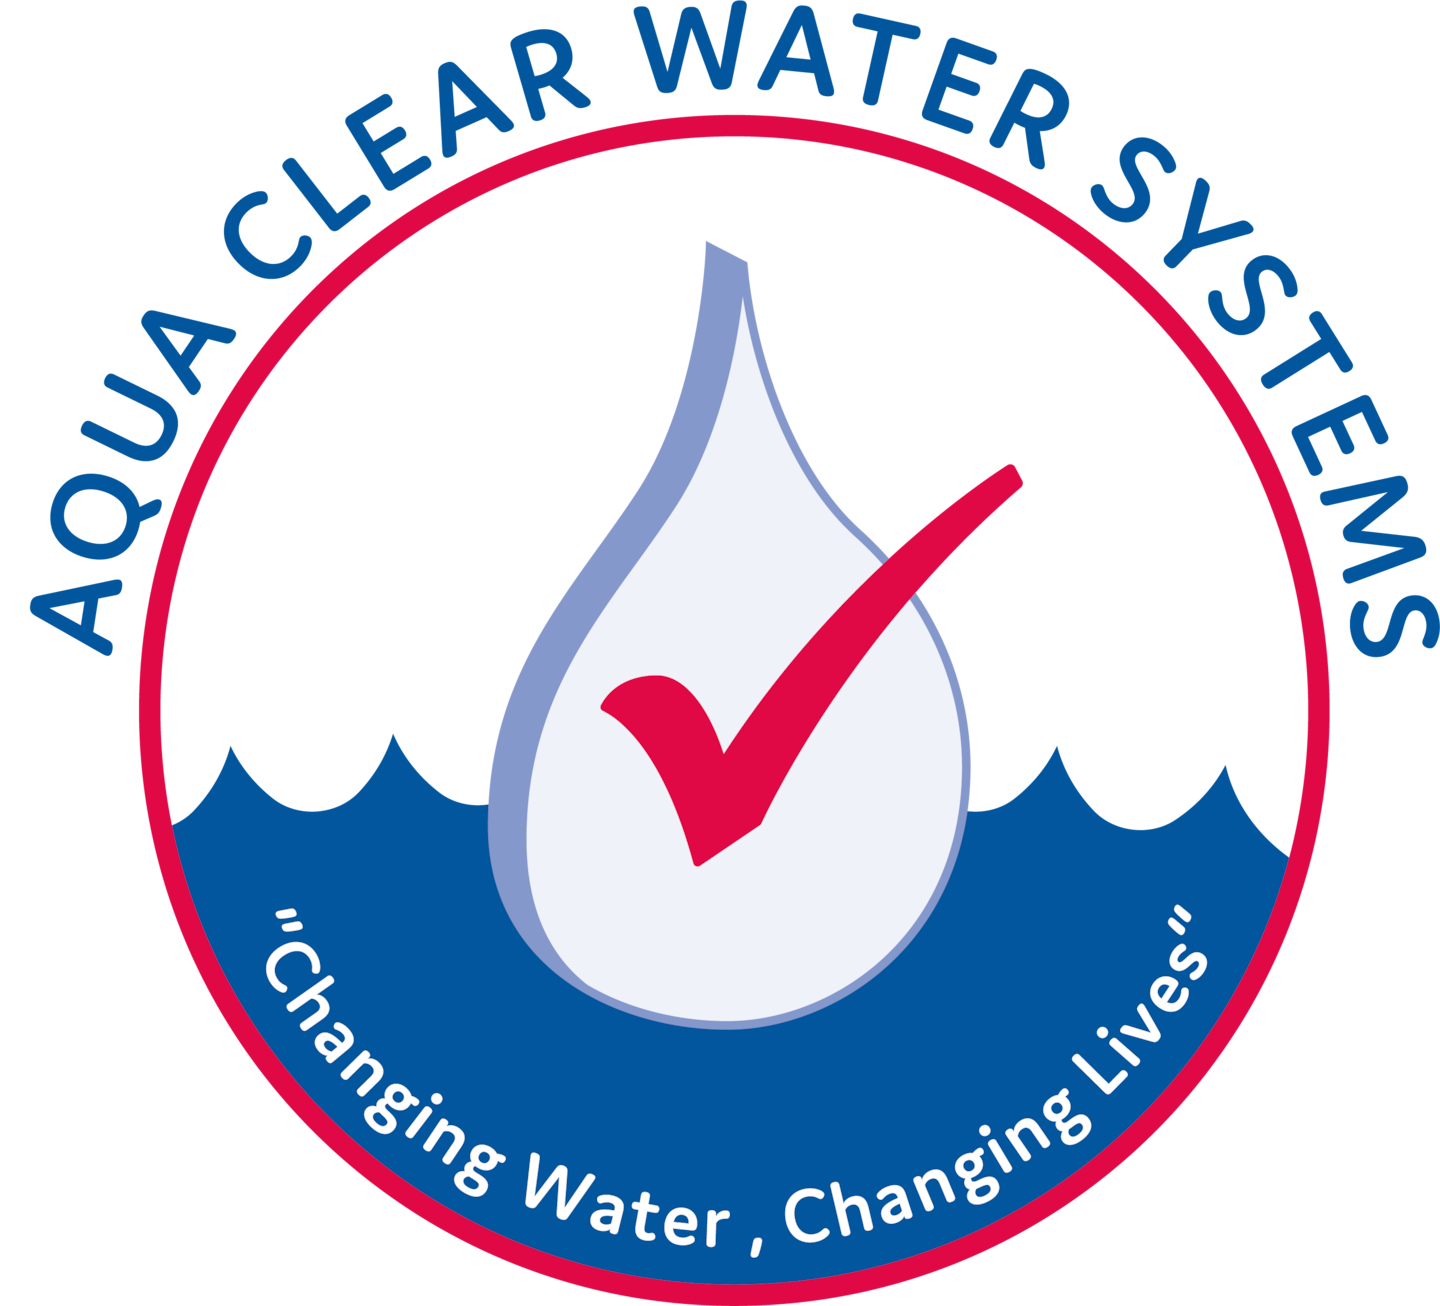 Aqua Clear Water Systems